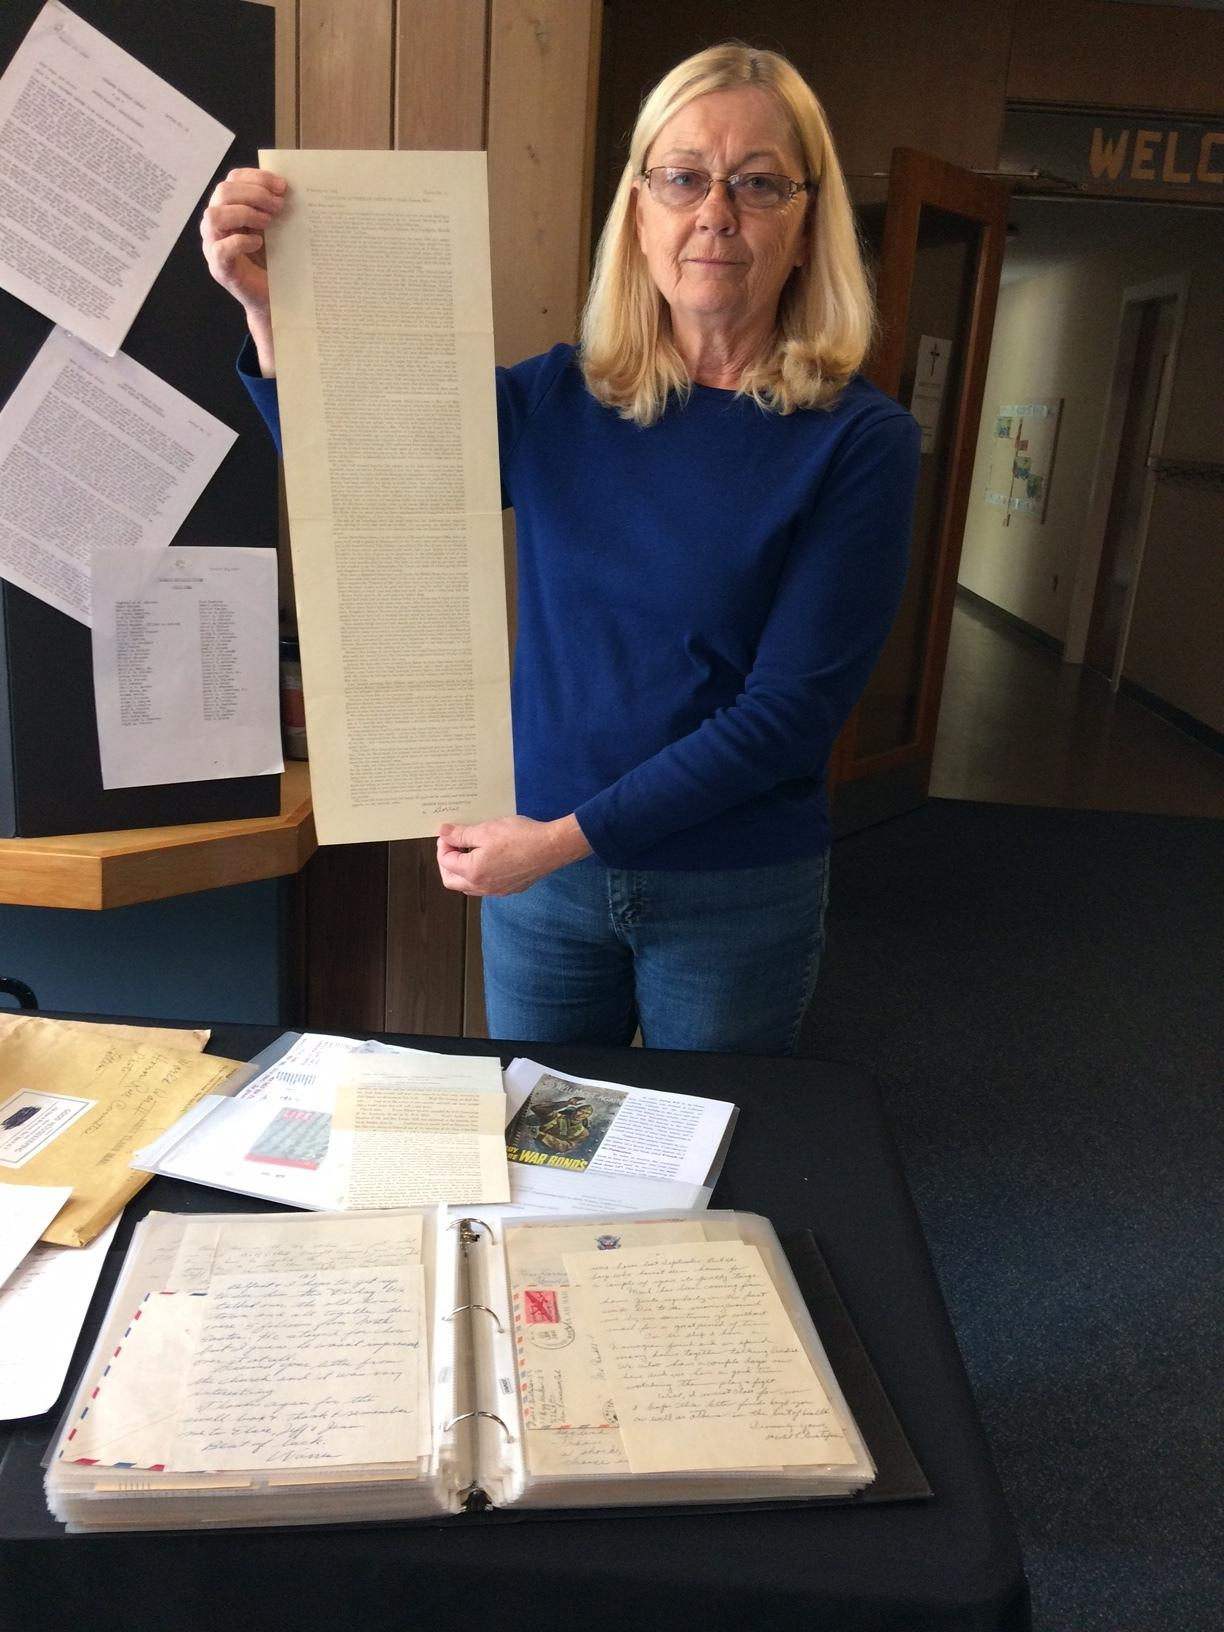 Elaine Sears shows archival material held by Holy Trinity.